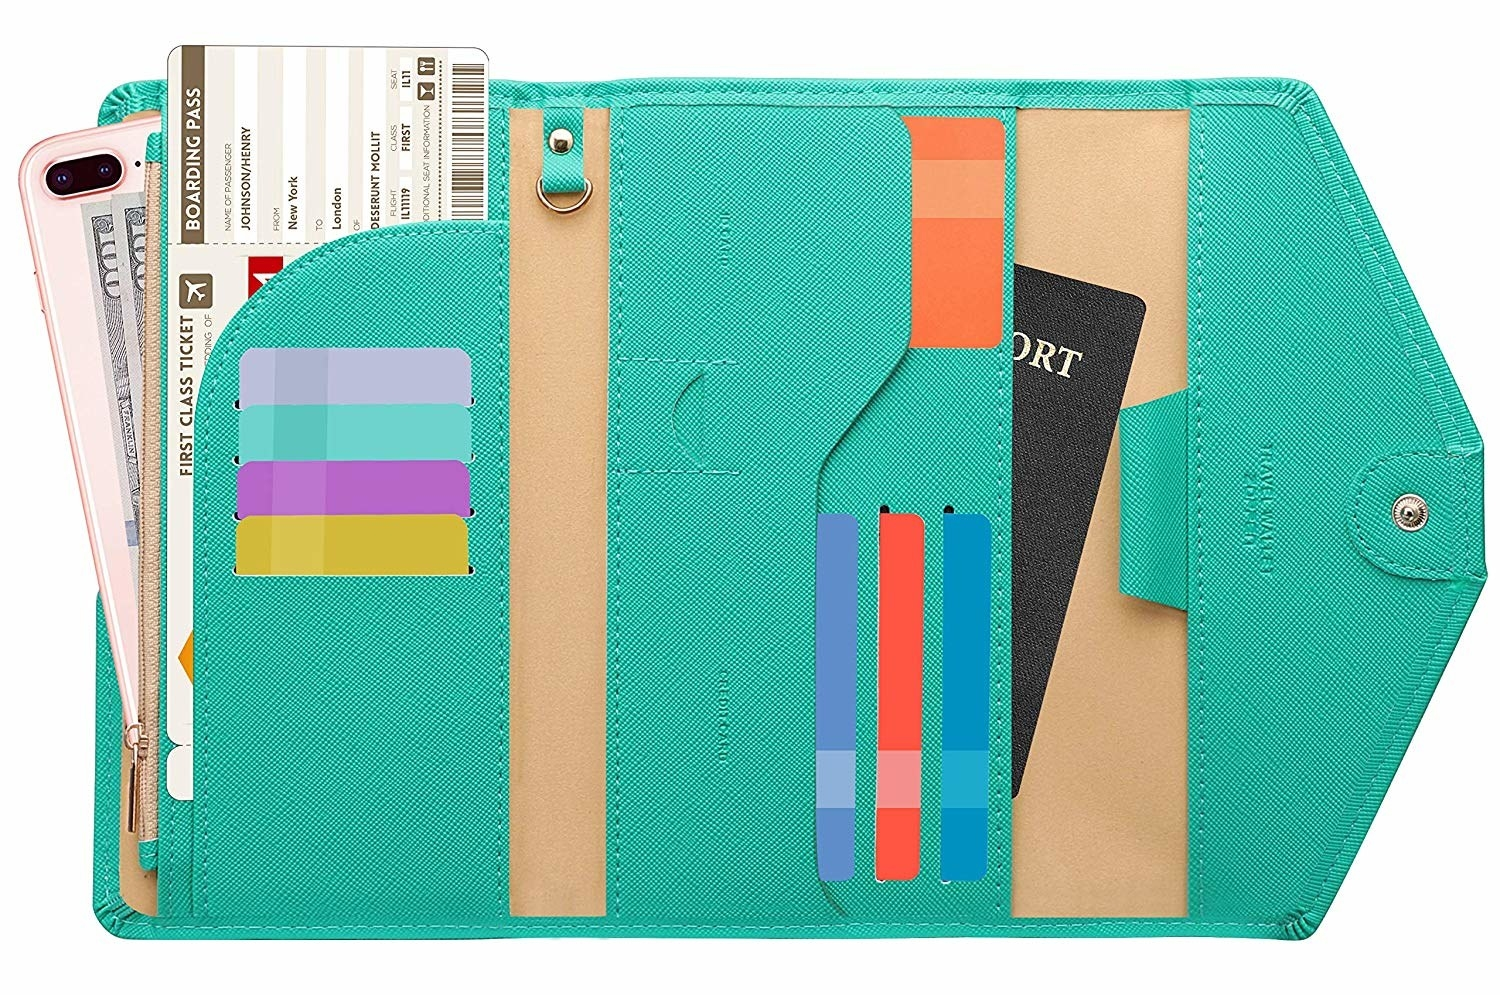 The wallet with a space for a passport, eight cards, a boarding pass, phone, and cash